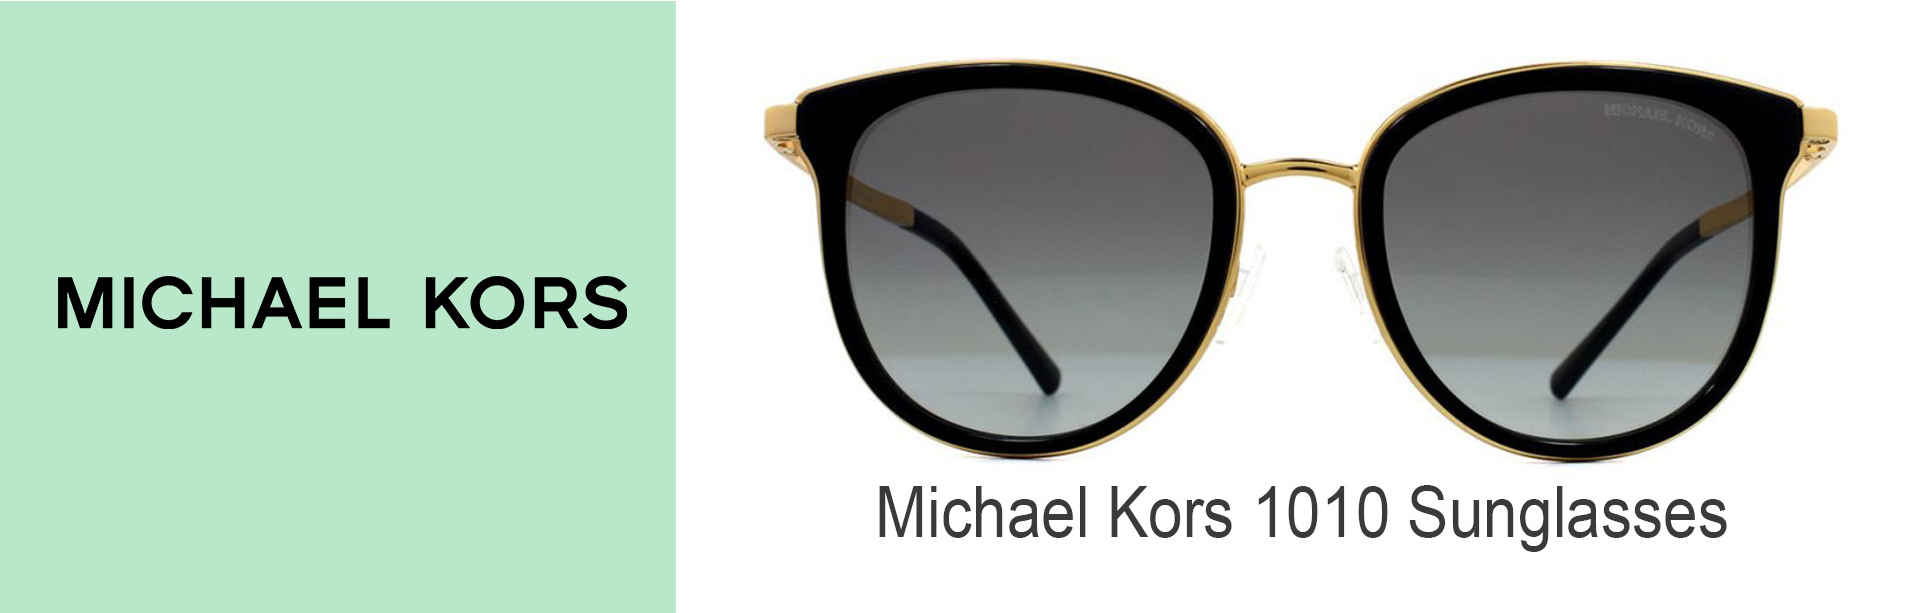 michael kors kids sunglasses